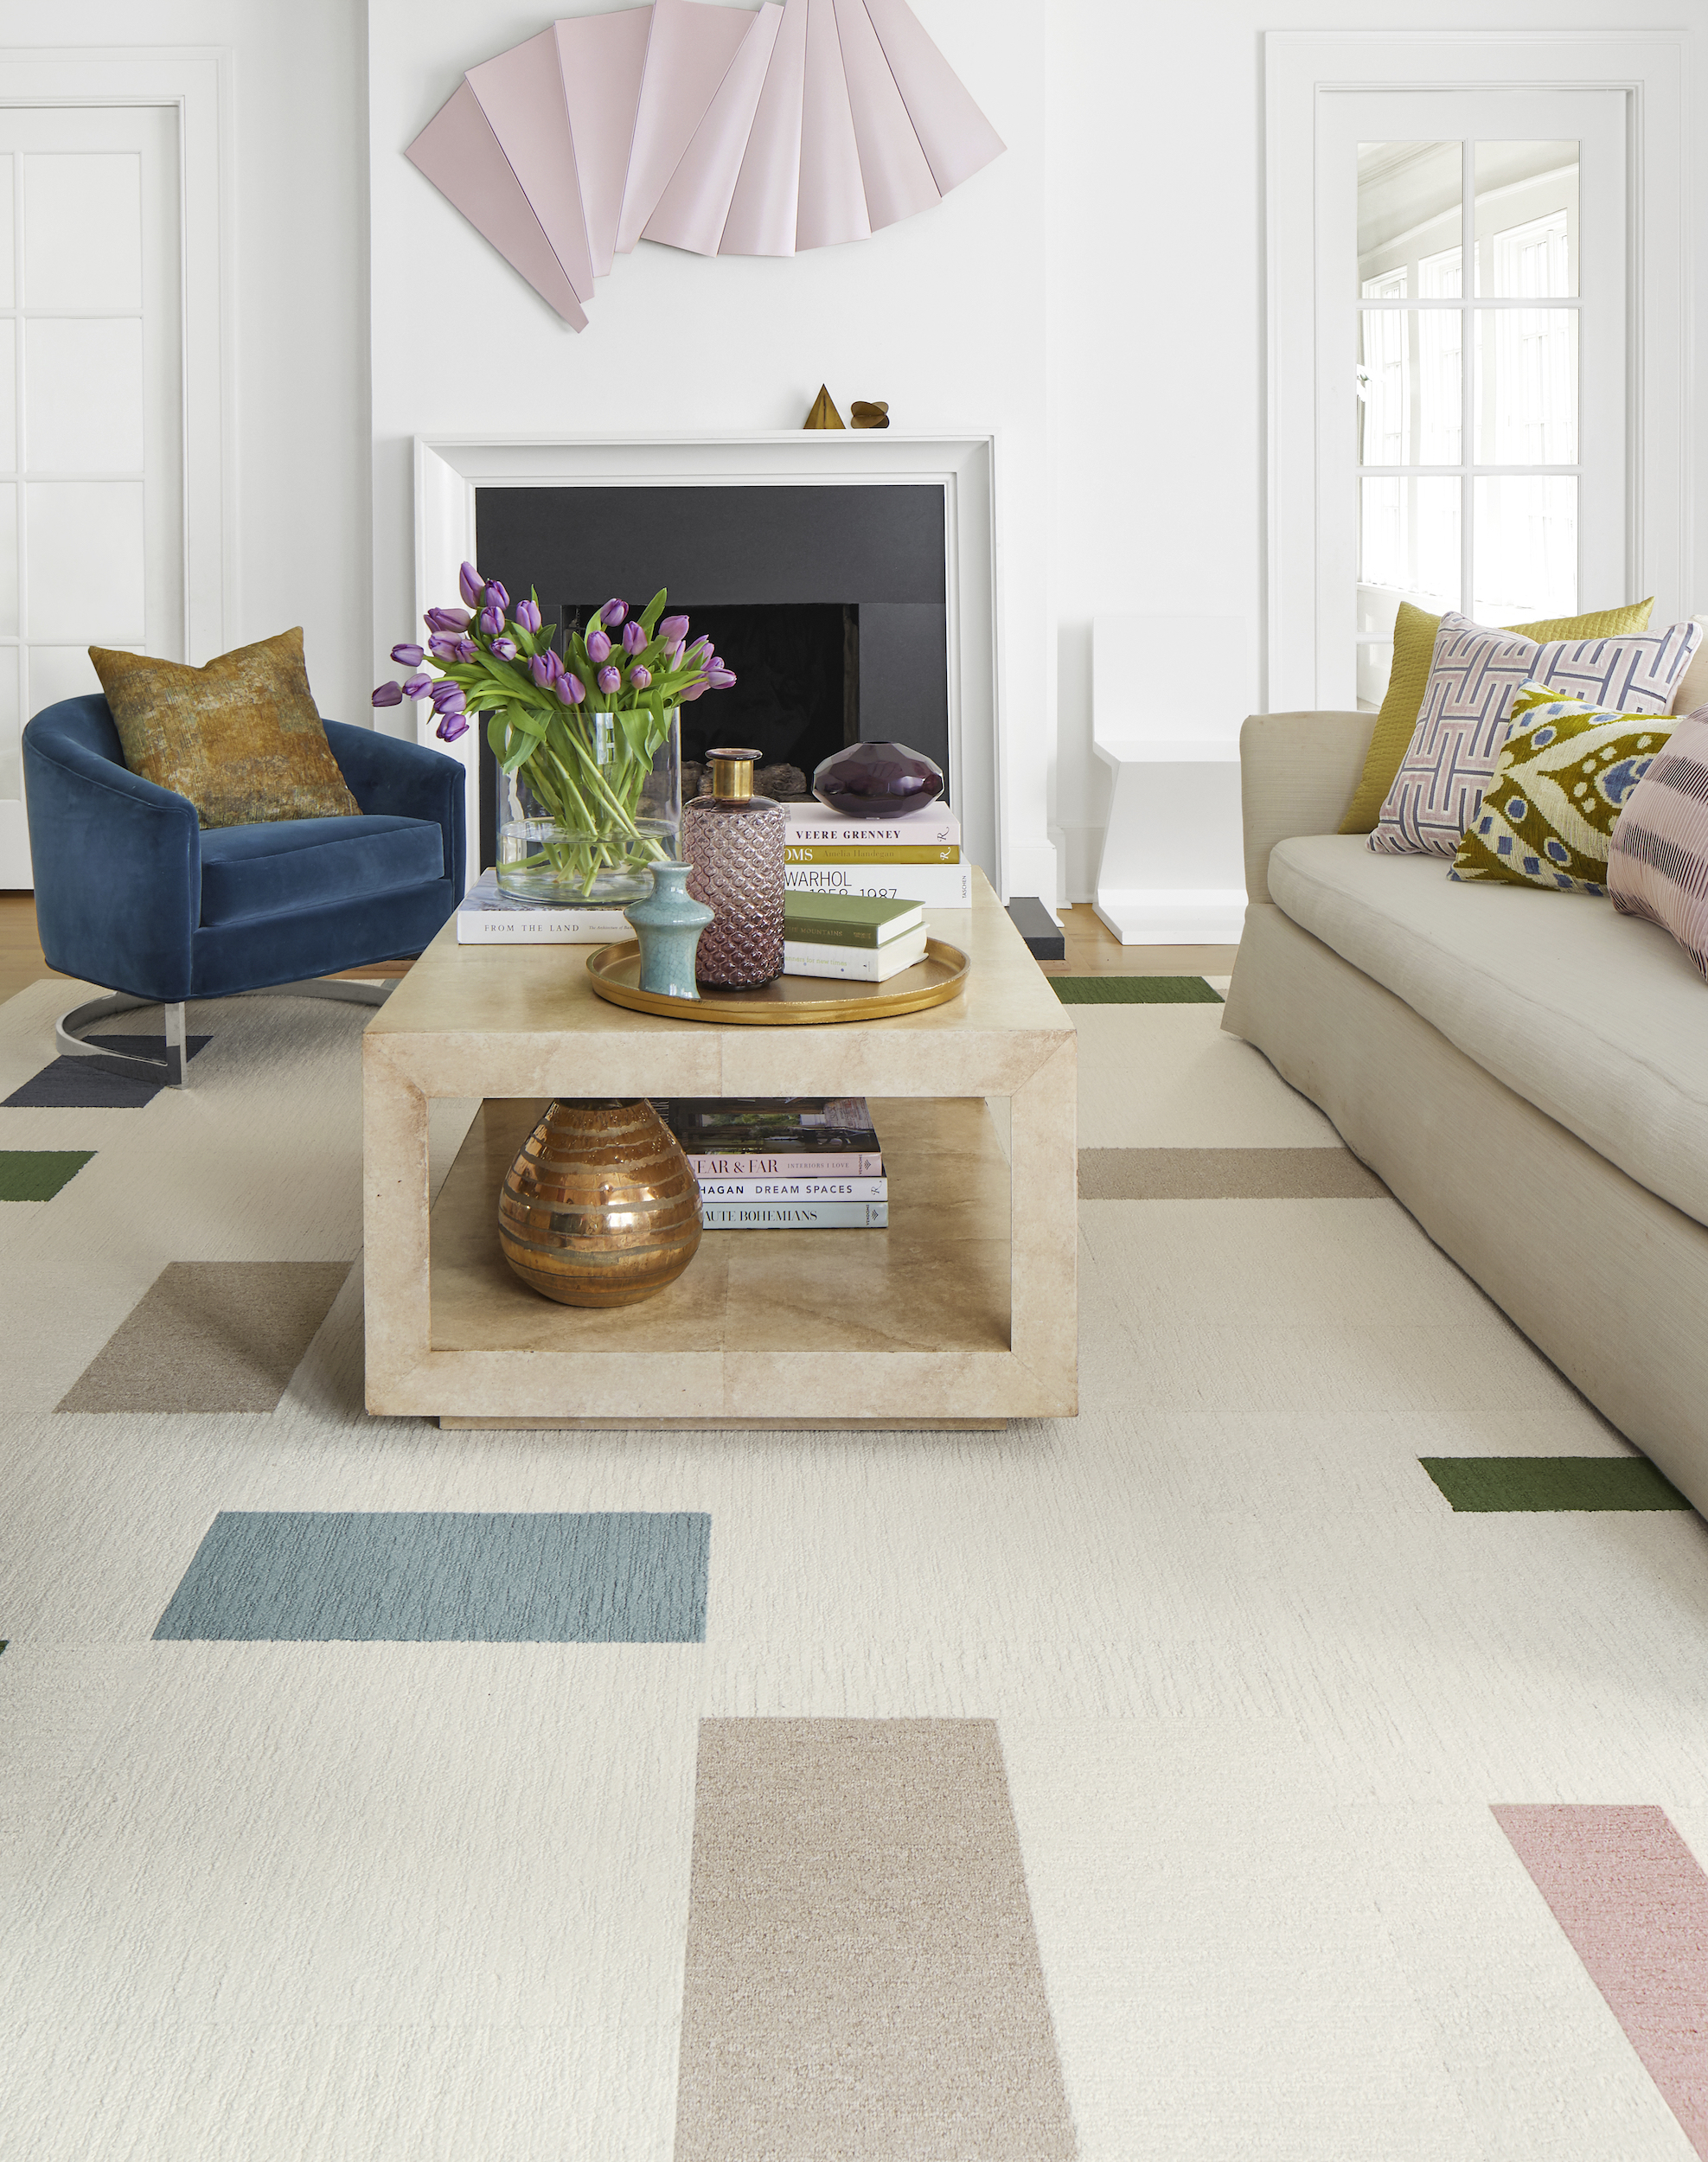 FLOR Made You Look area rug in Bone, Beige, Flannel Blue, Blush, Forest, and Slate, a cream couch, blue chair, and square coffee table.